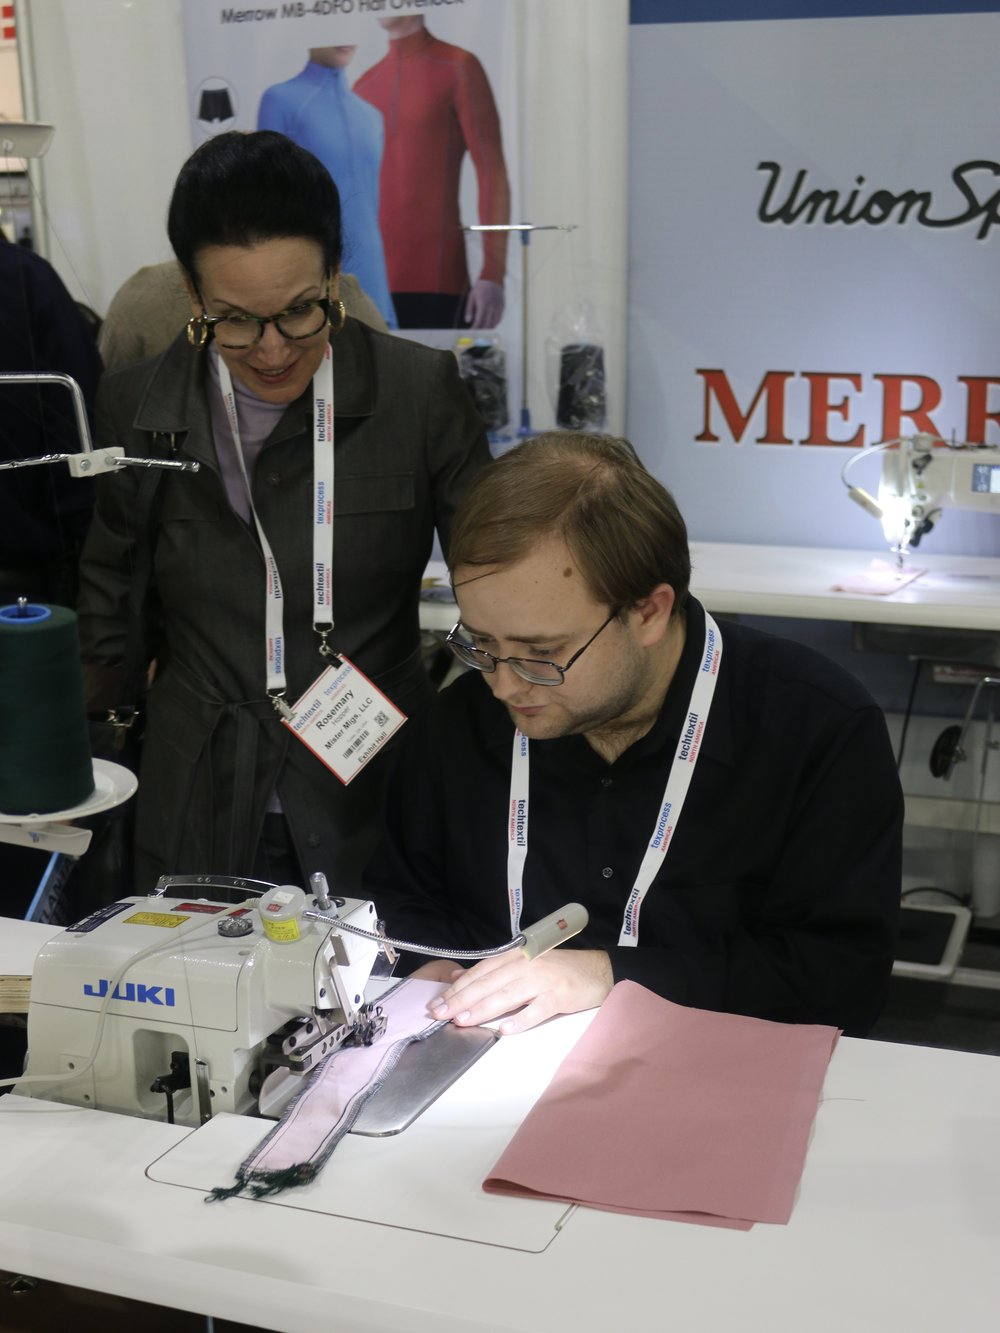 09152016 Sam at Textile conference on industrial serger.jpg